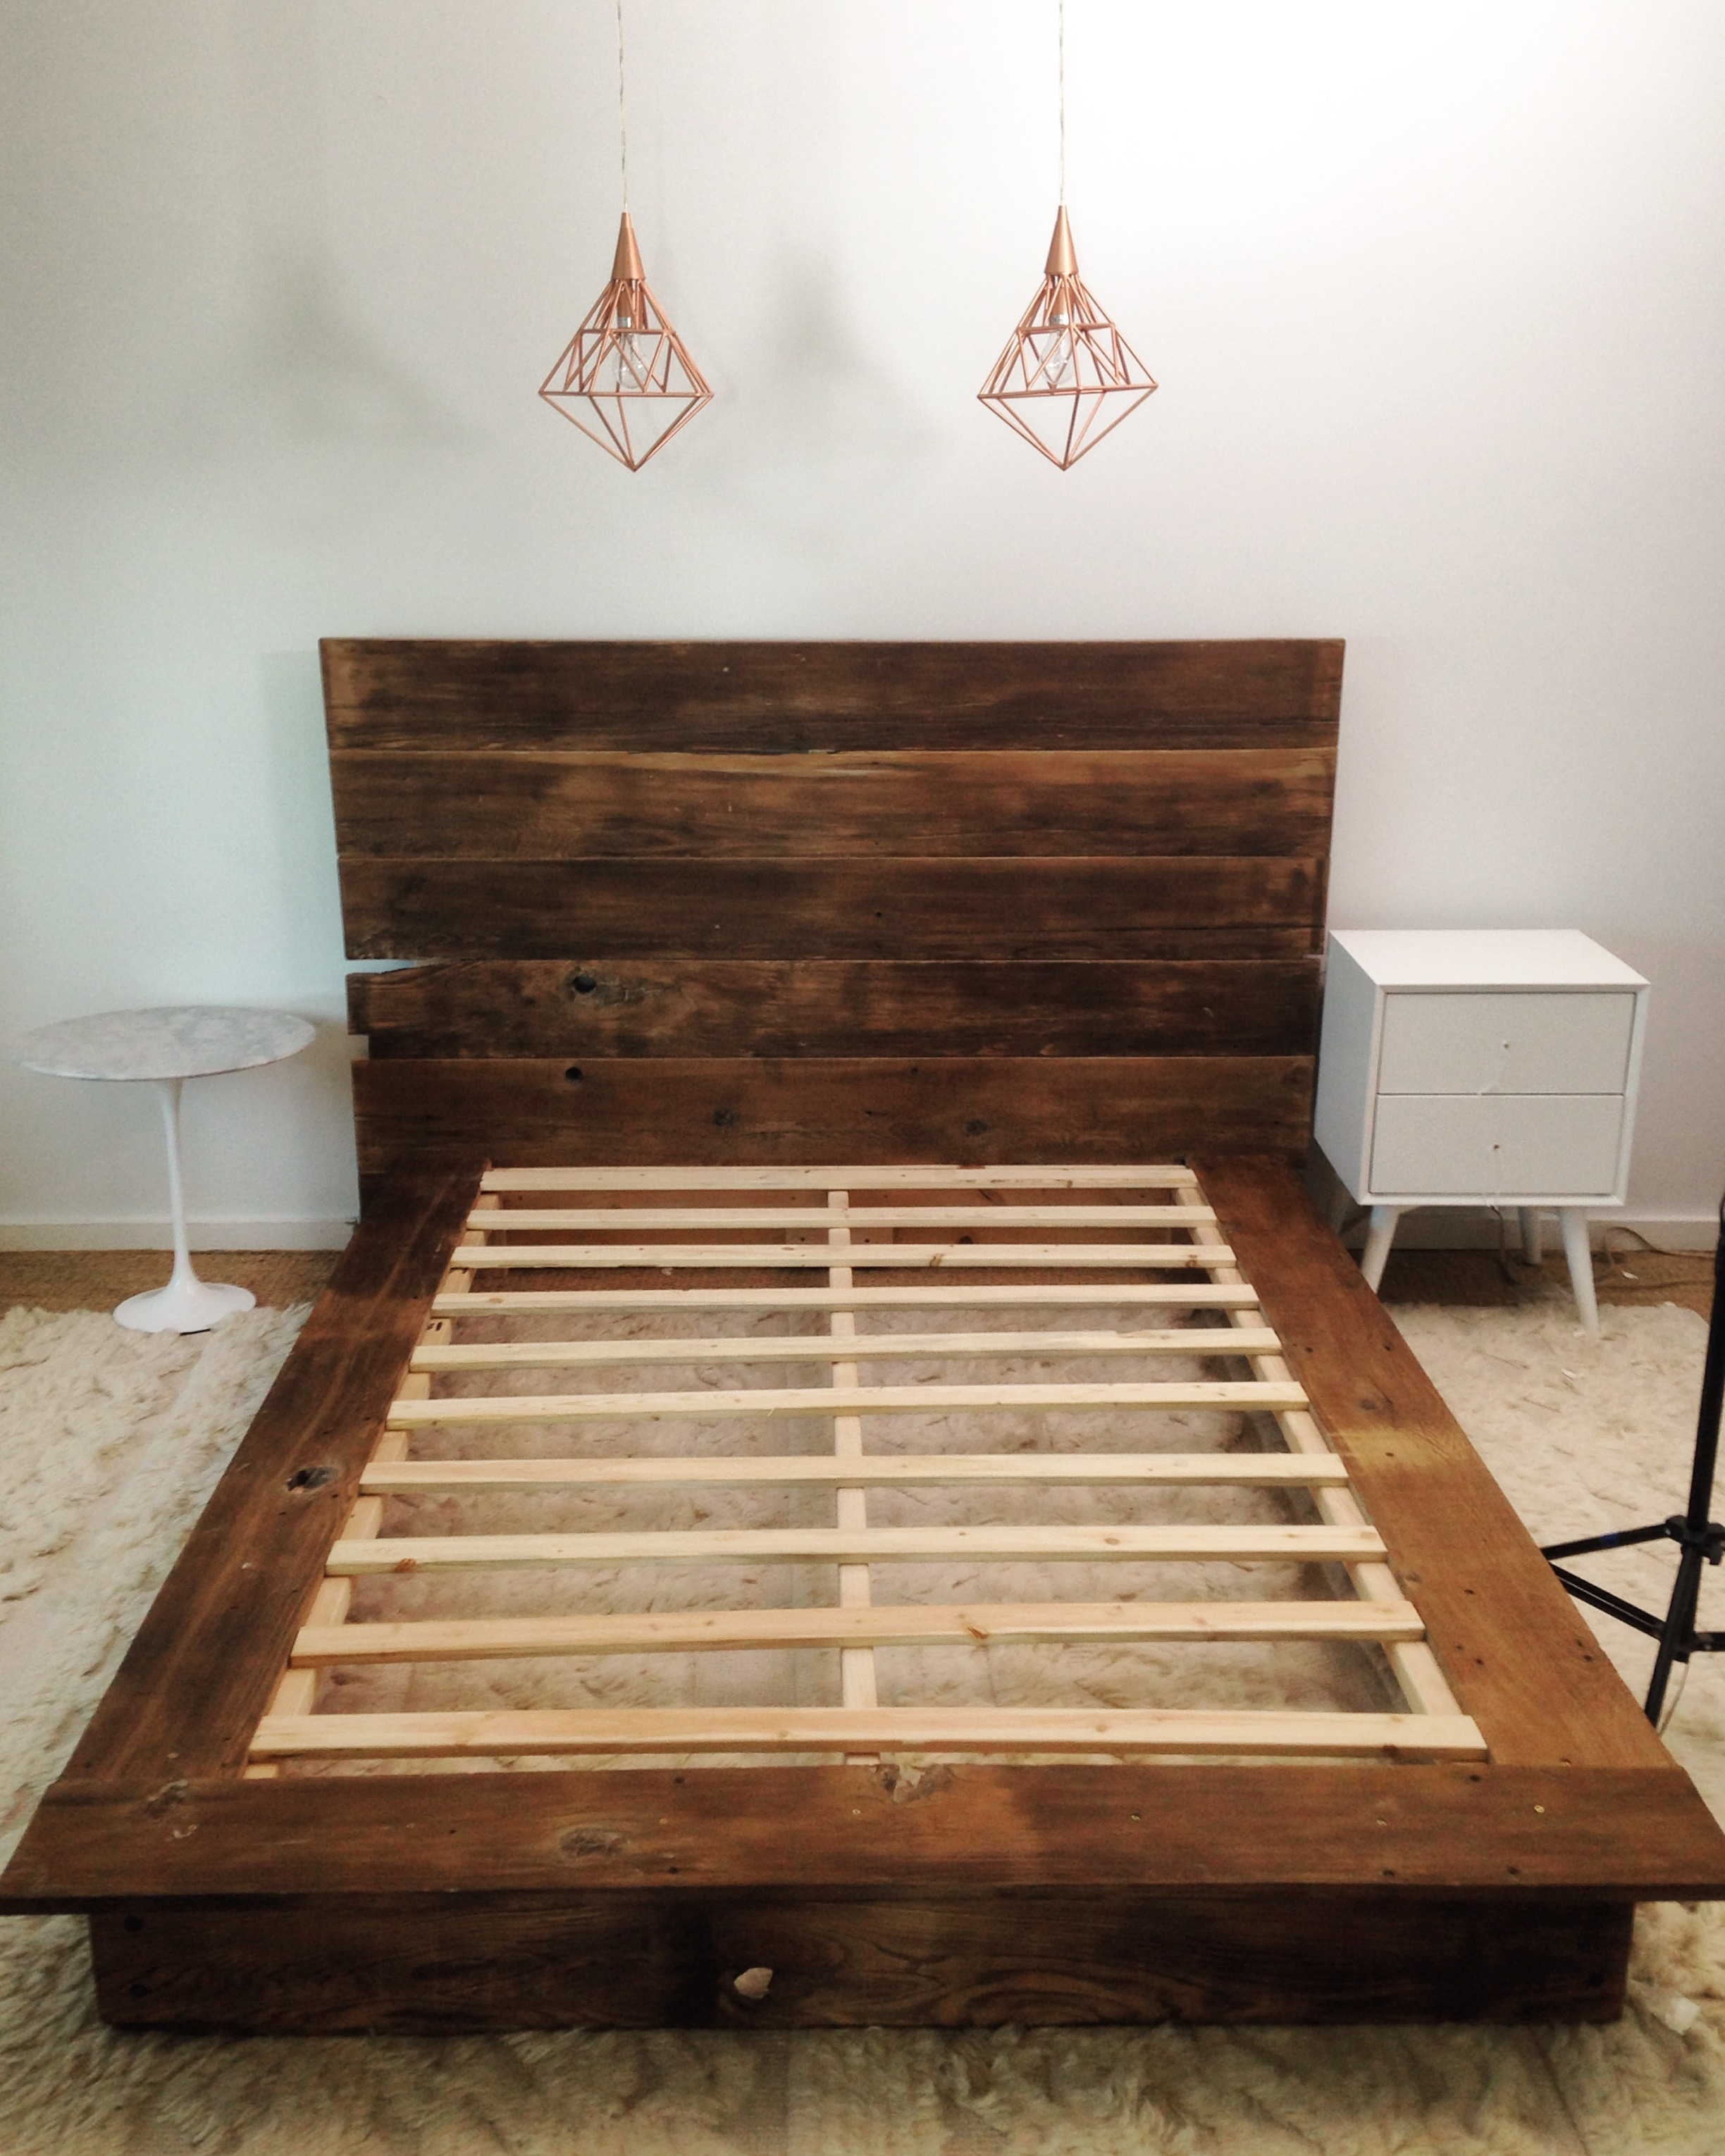 Permalink to Wooden Platform Bed Frames